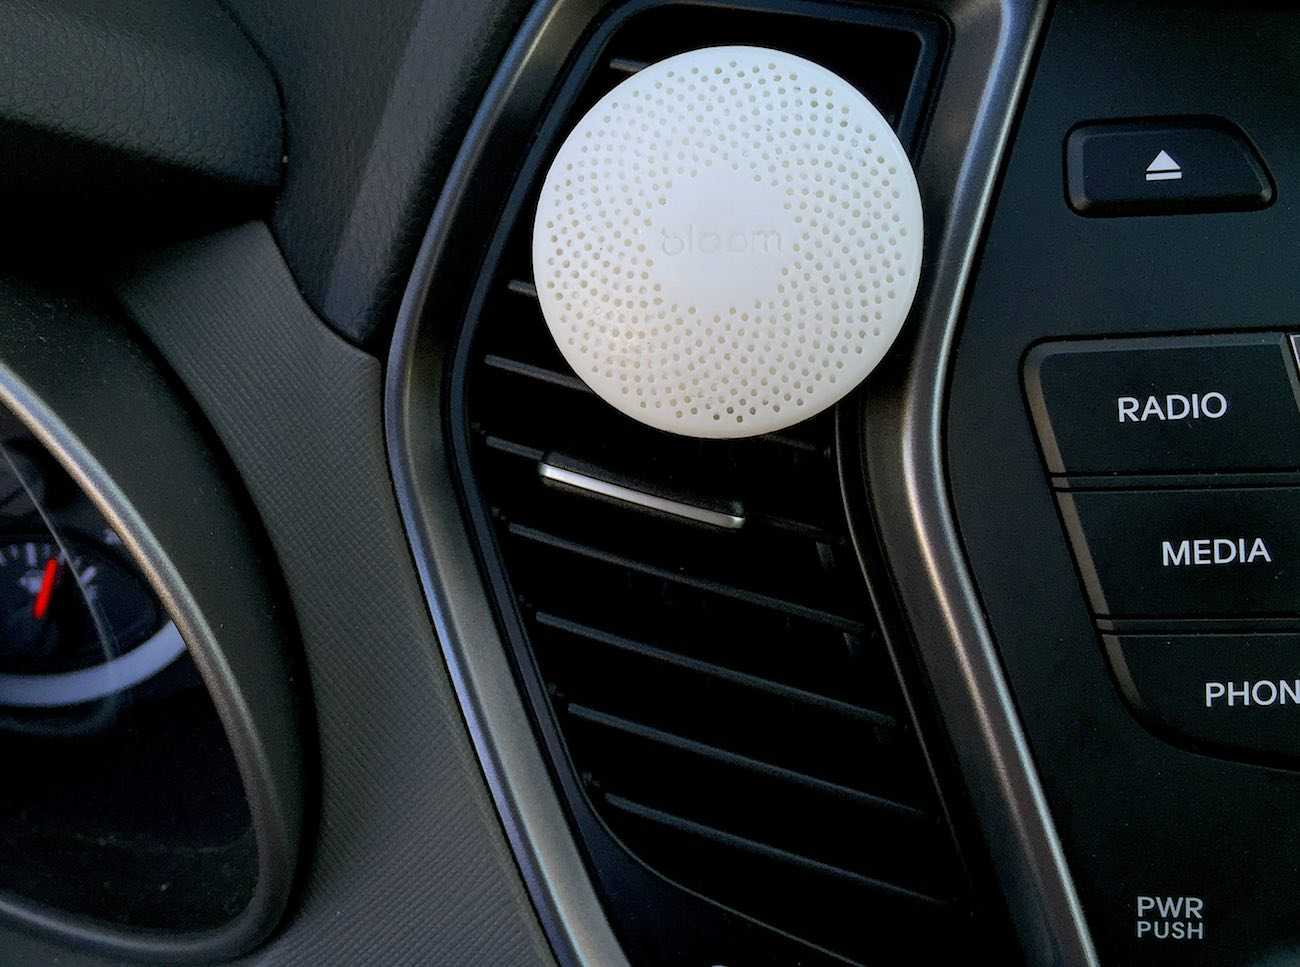 You Can Also Take the Bloom Portable Air Quality Monitor In a Car With You